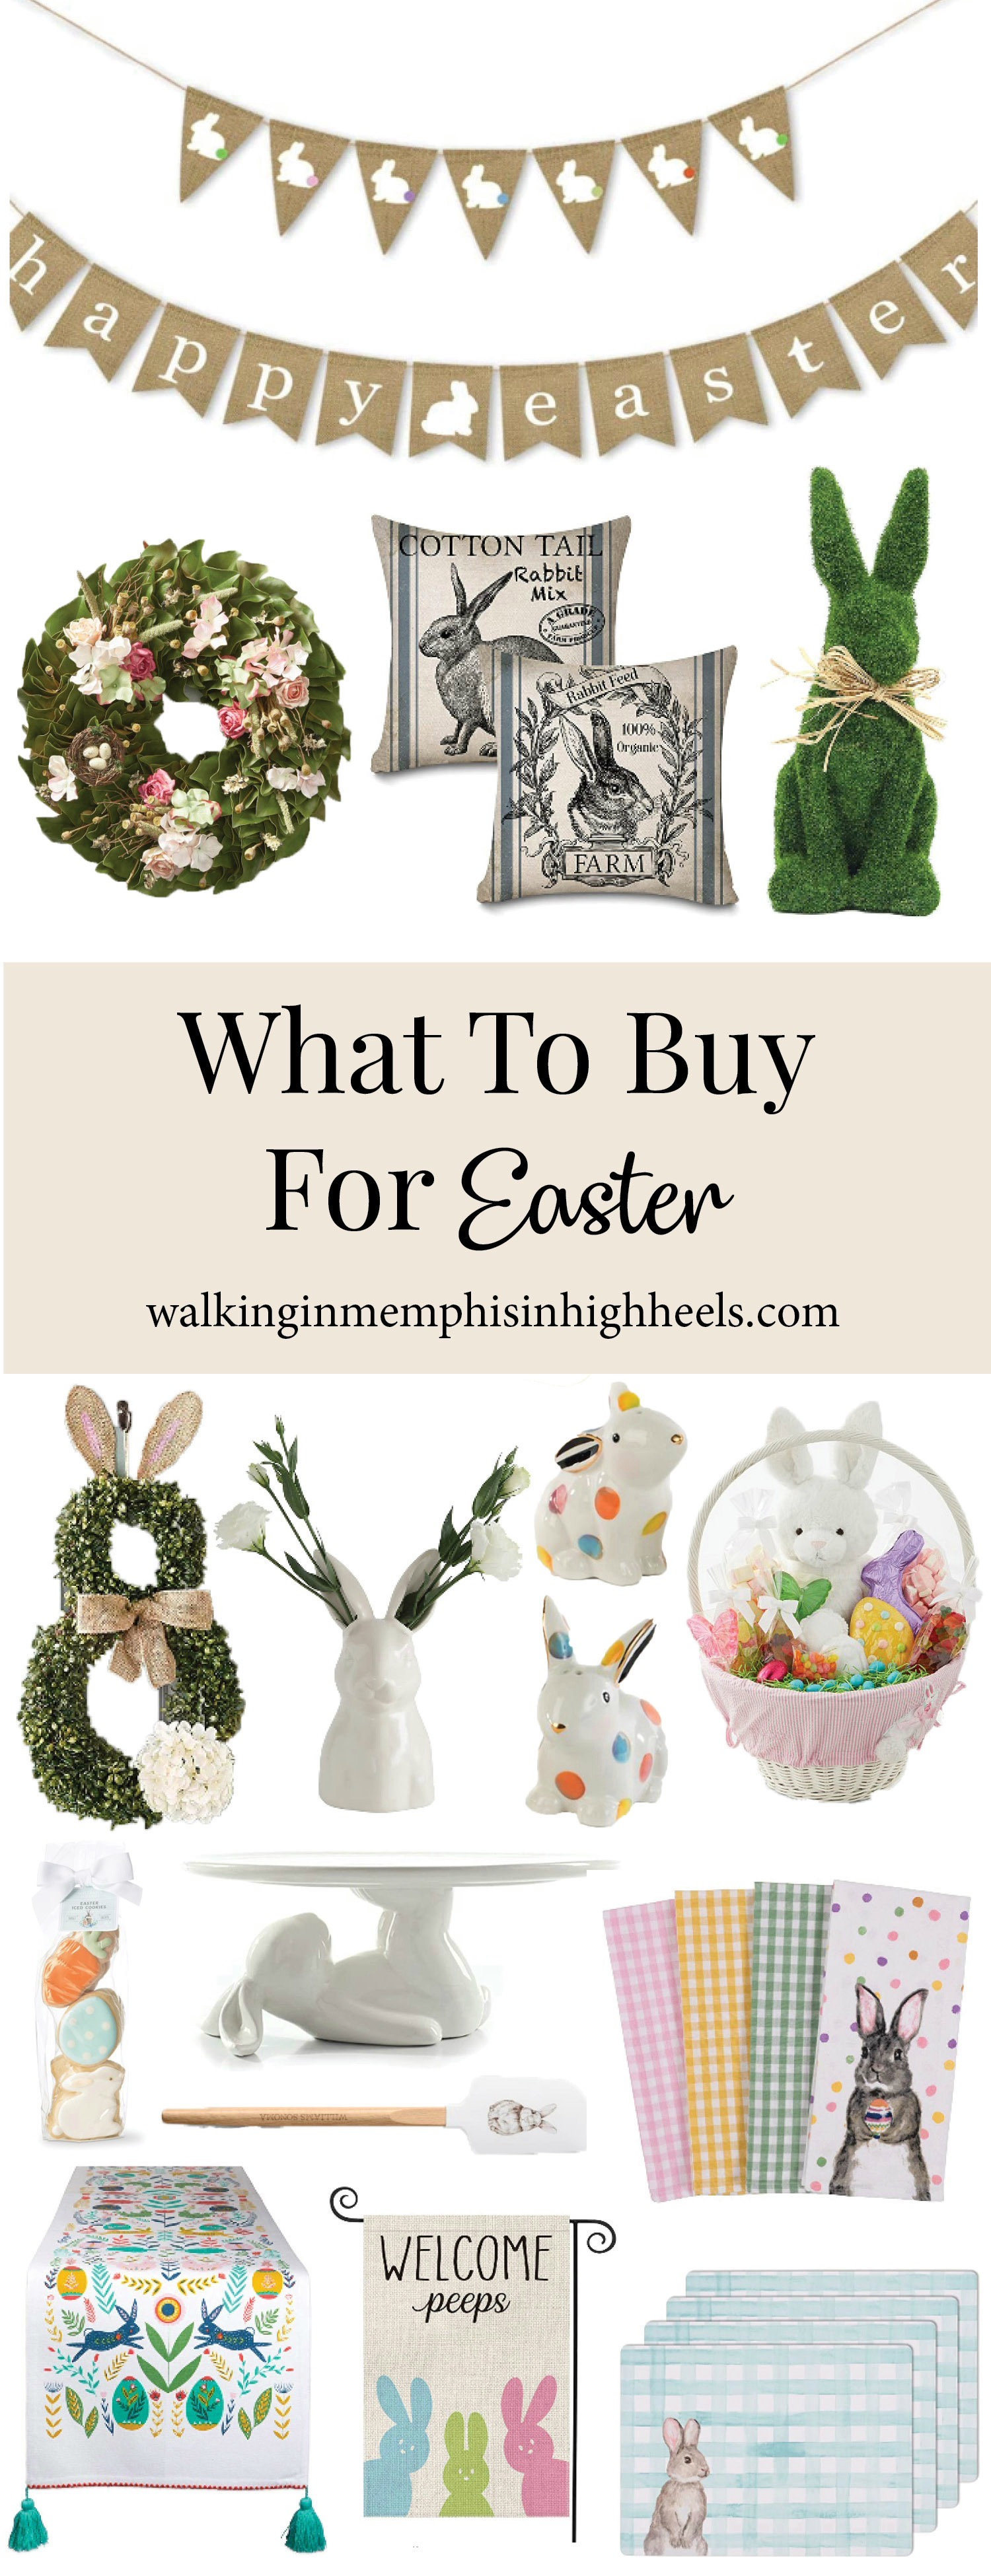 Easter Home Decor: How to Decorate Your Home for Easter